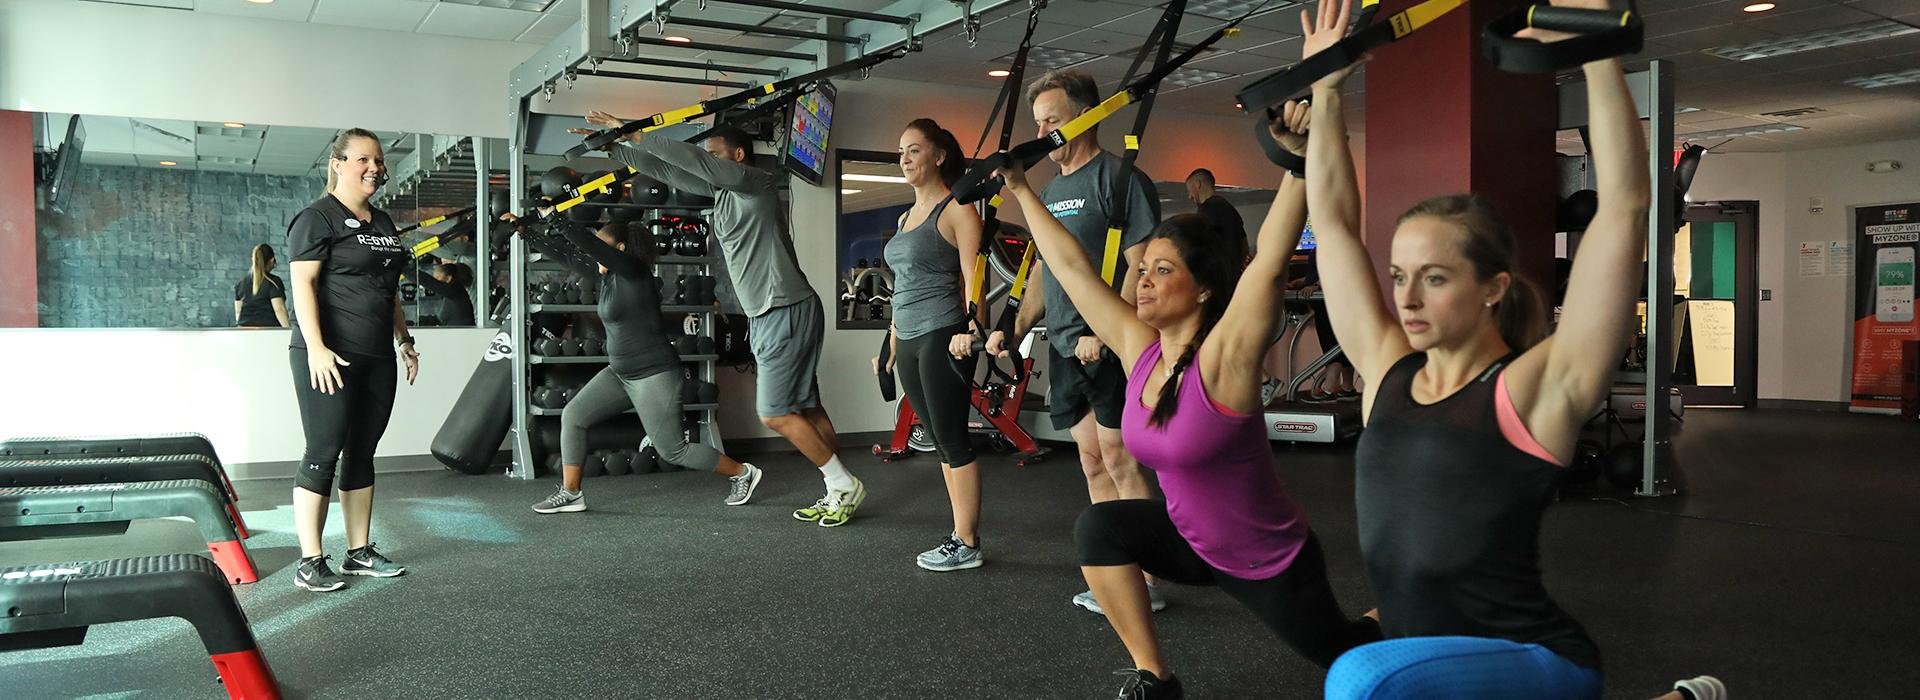 Trx Classes Virginia Beach